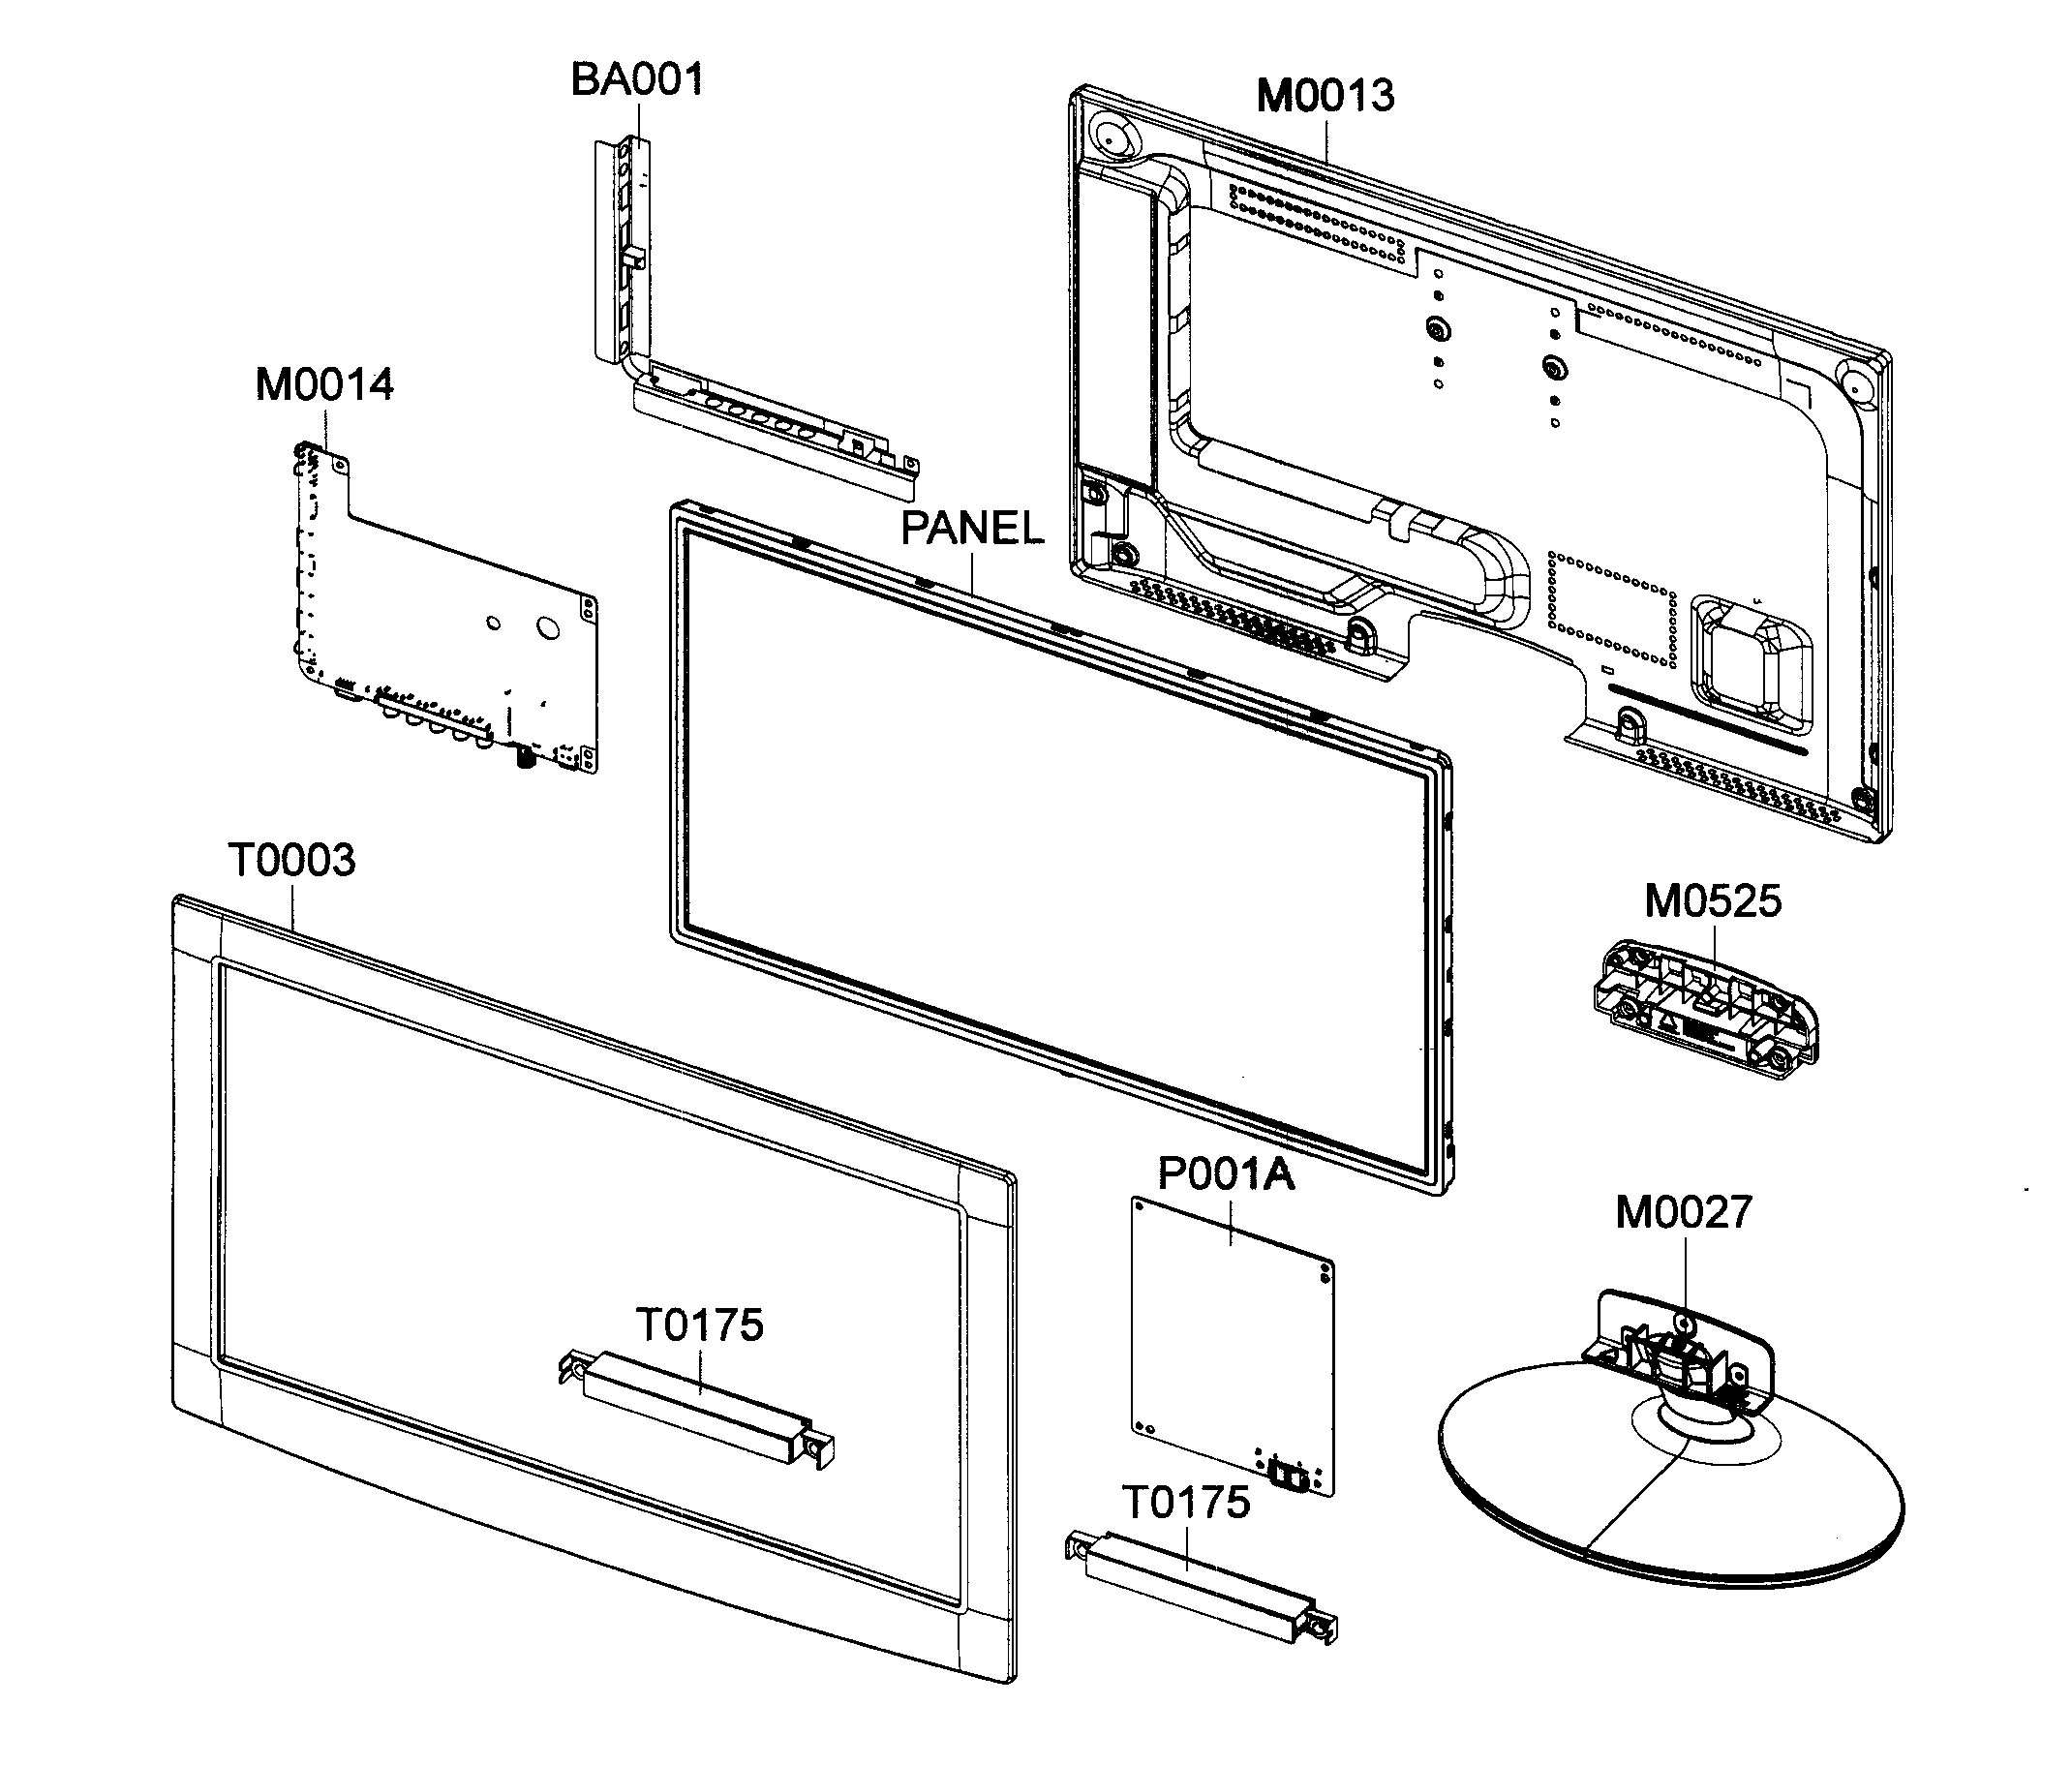 Samsung Tv Replacement Parts Manual Pictures to Pin on